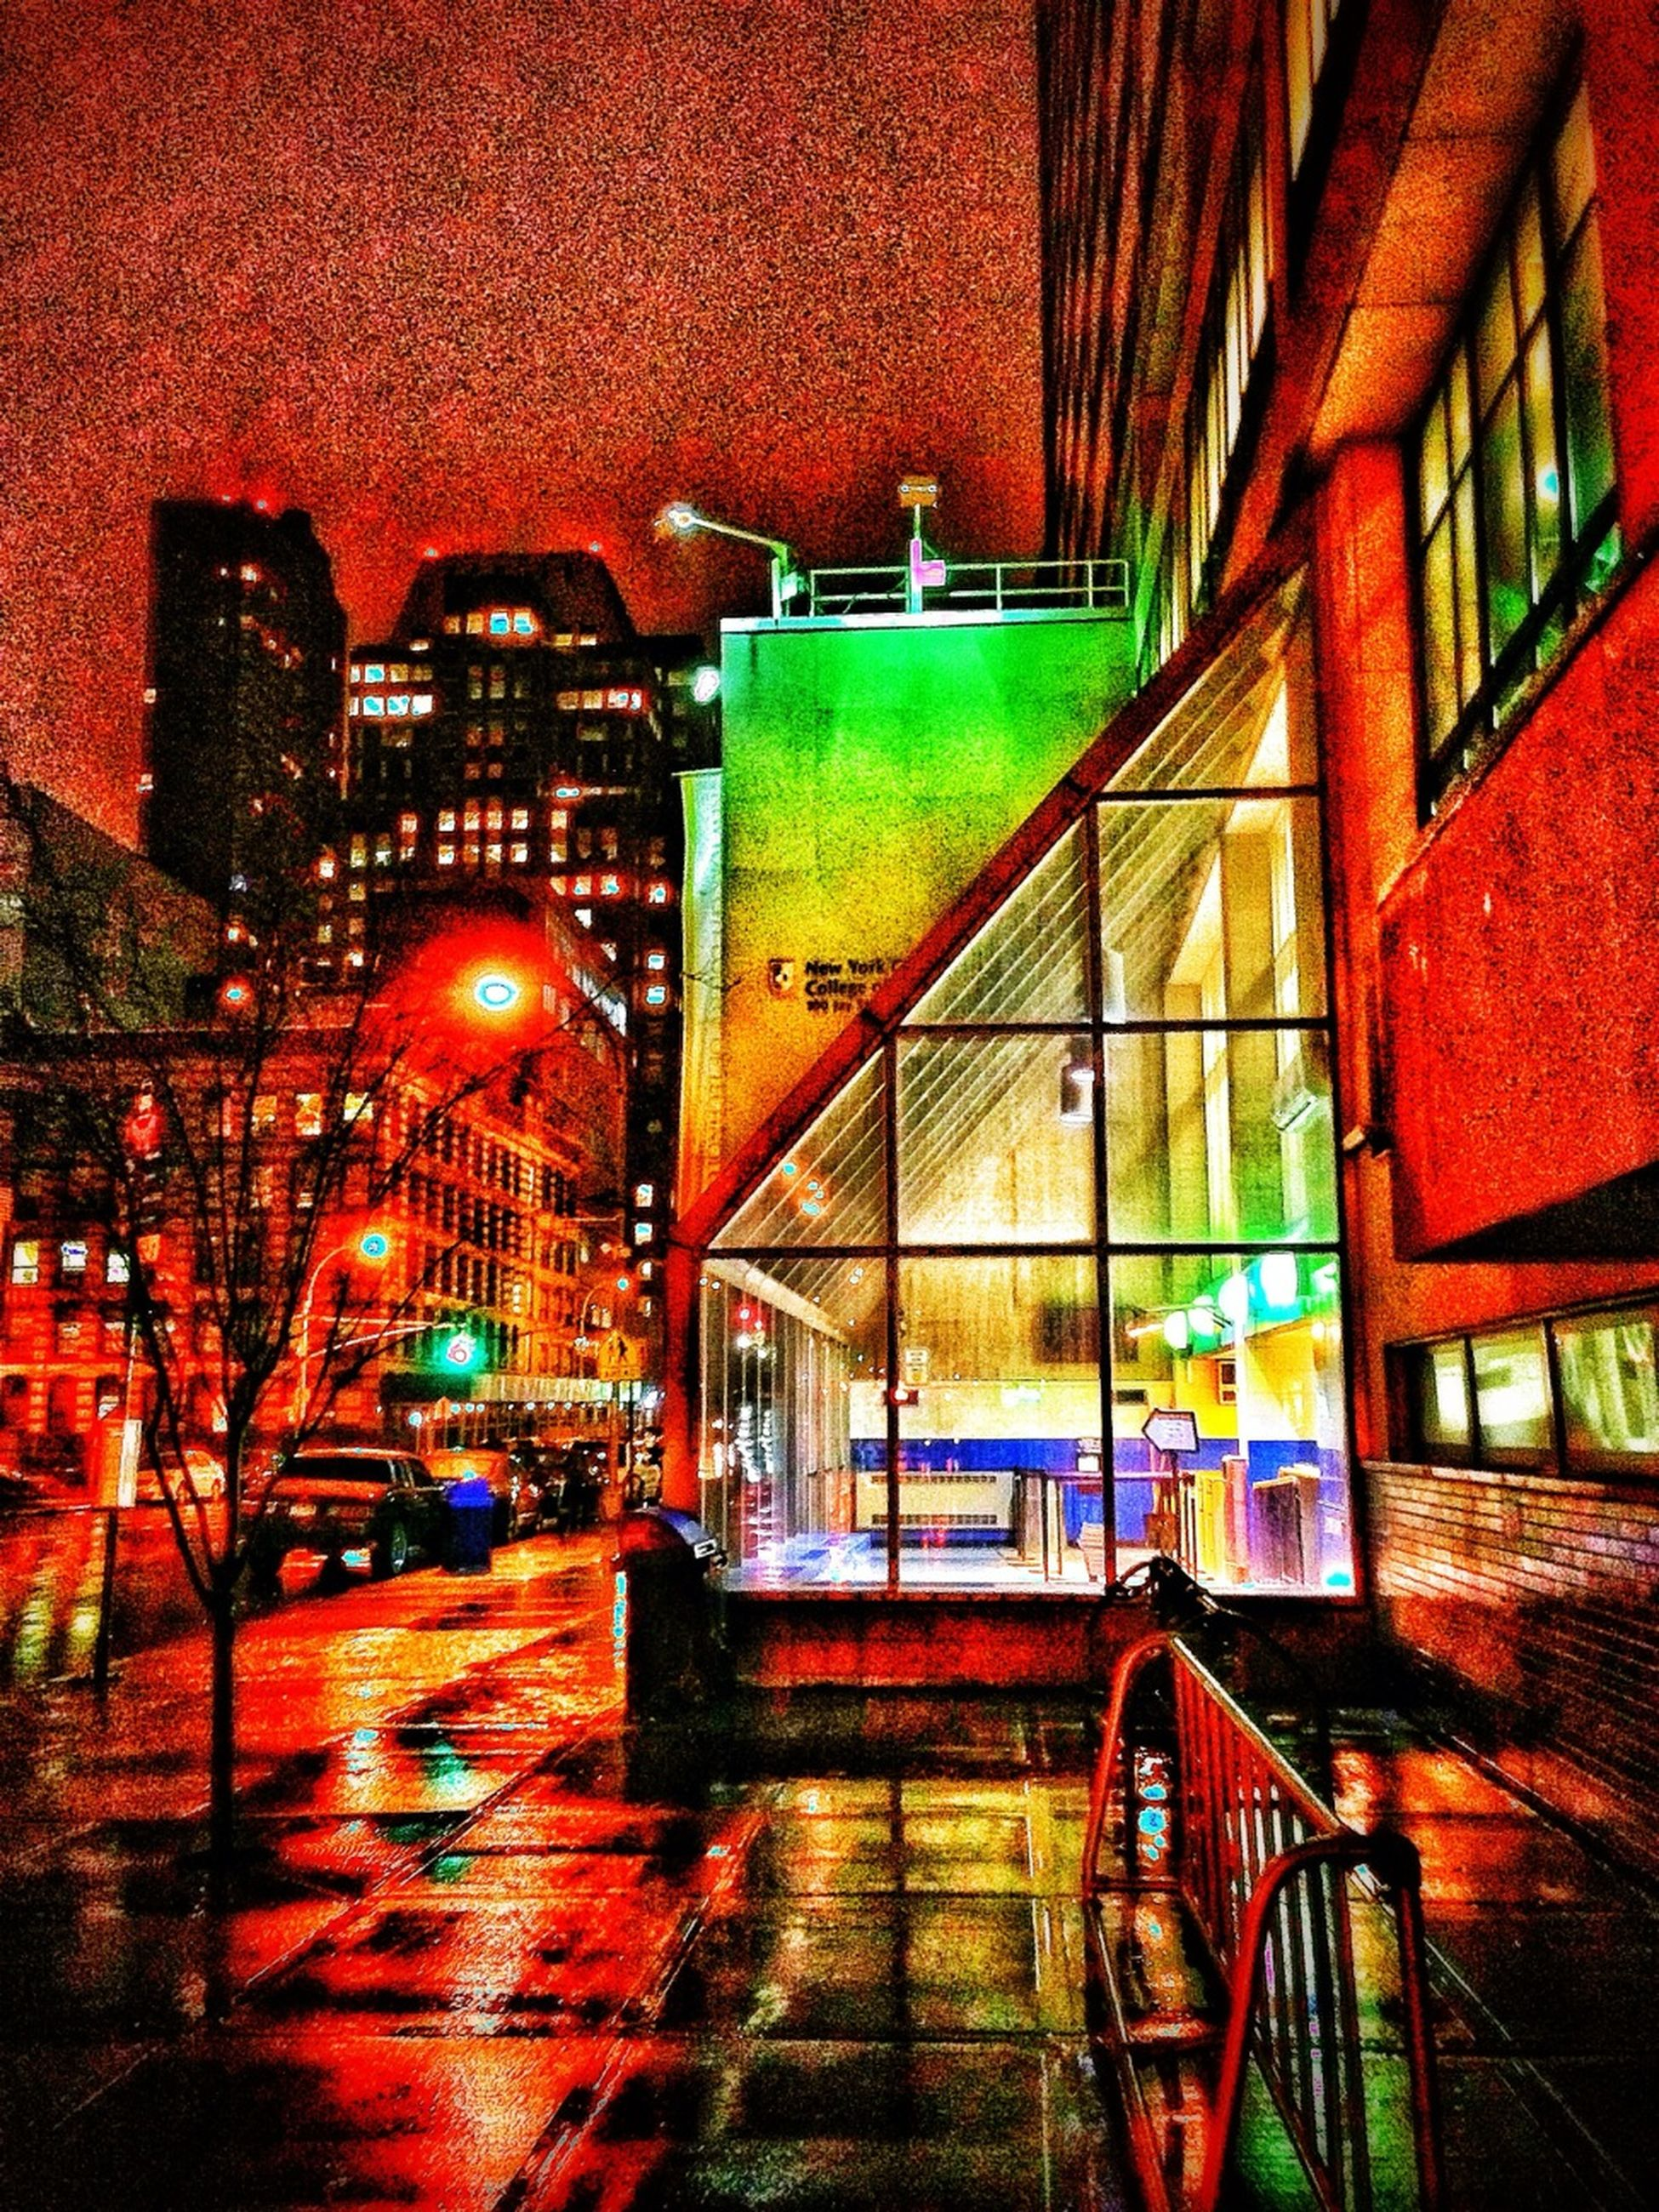 architecture, built structure, building exterior, transportation, mode of transport, multi colored, red, illuminated, bicycle, wall - building feature, land vehicle, street, railing, indoors, steps, no people, night, window, high angle view